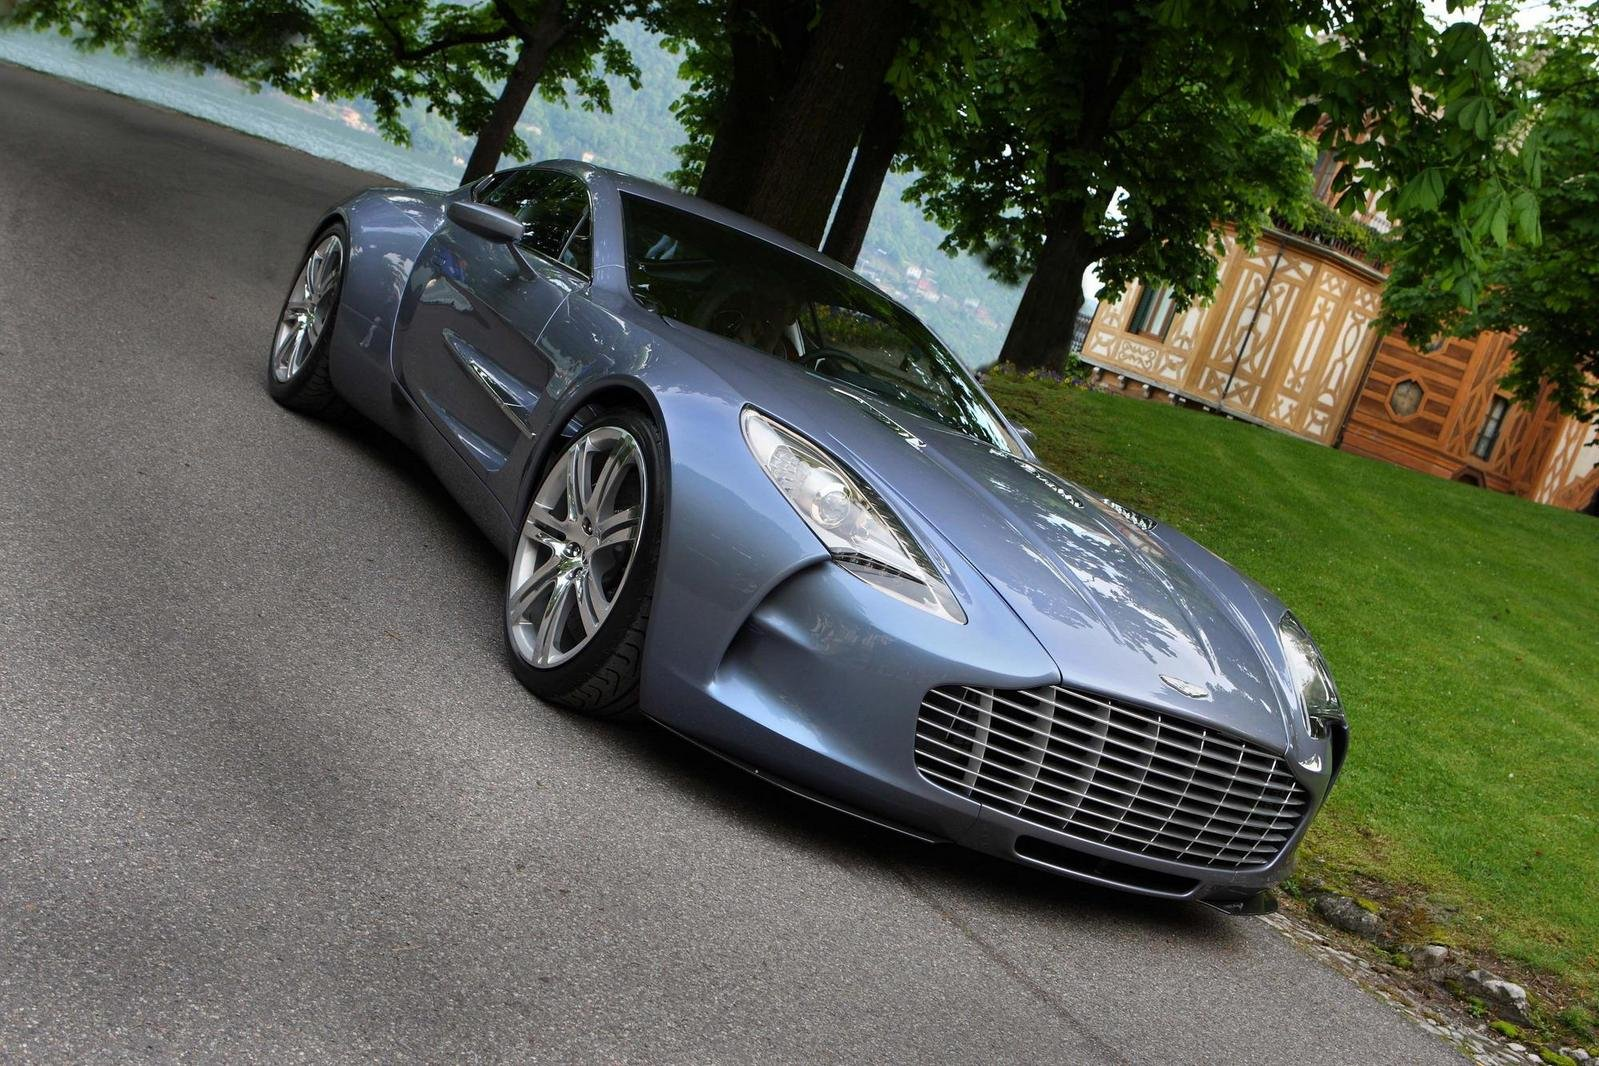 Aston Martin One-77 - New Image Gallery News - Gallery - Top Speed